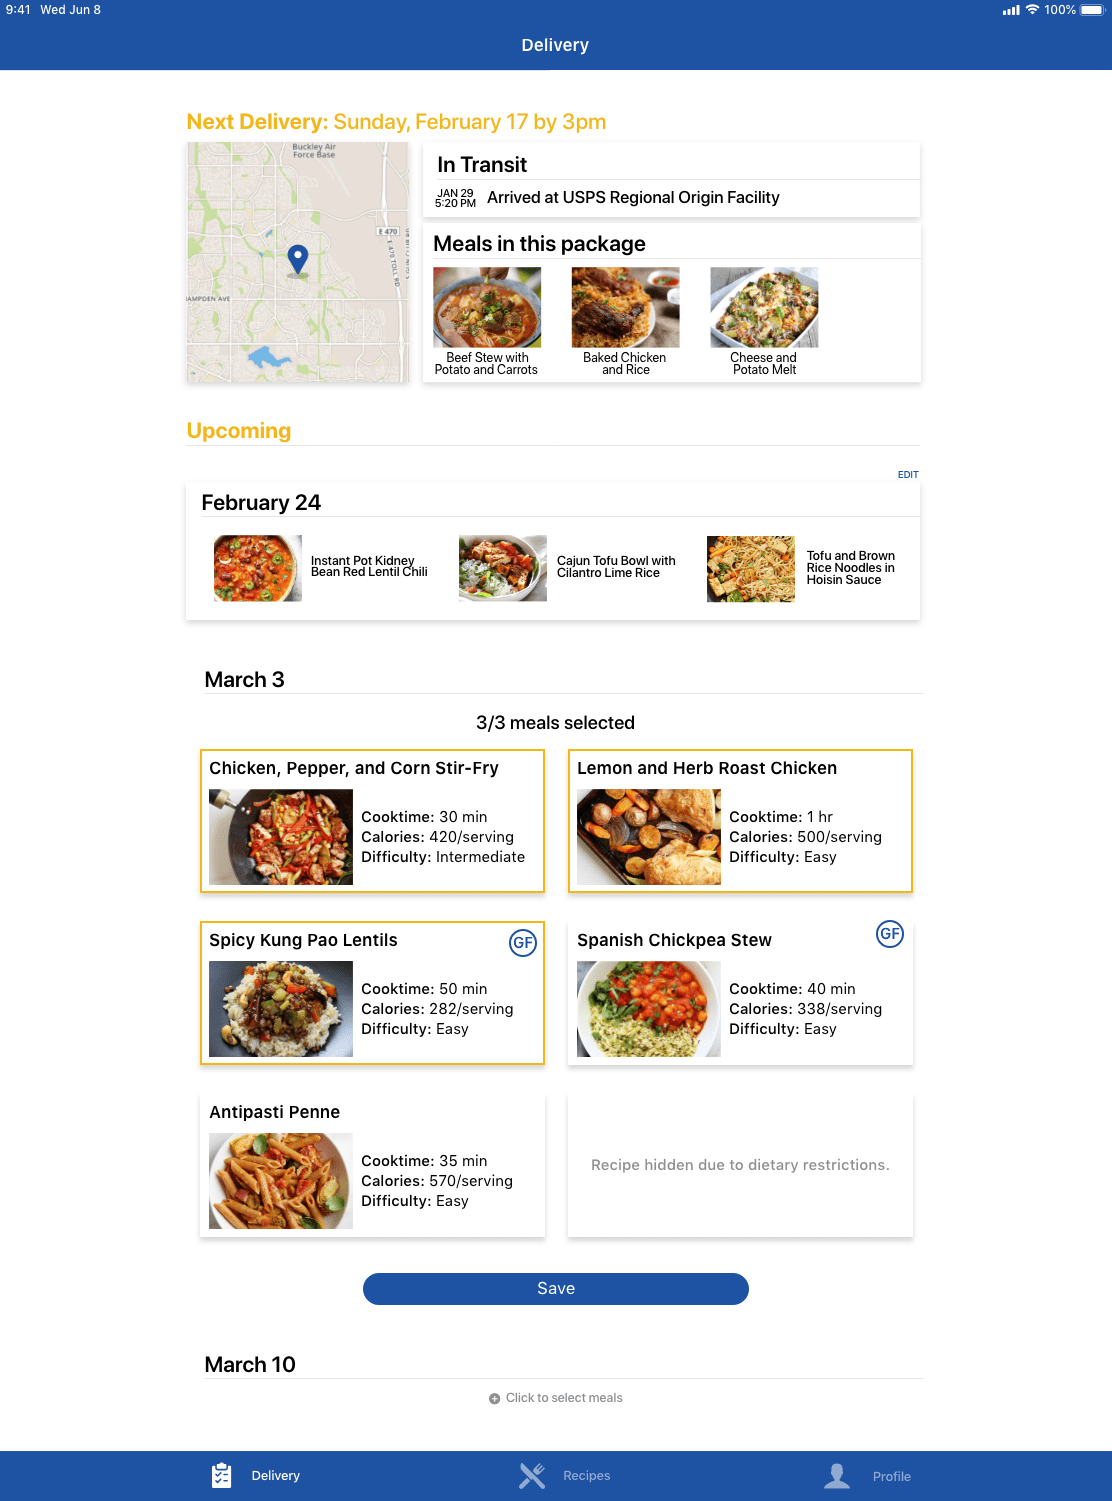 Delivery information and meals selected for a future delivery